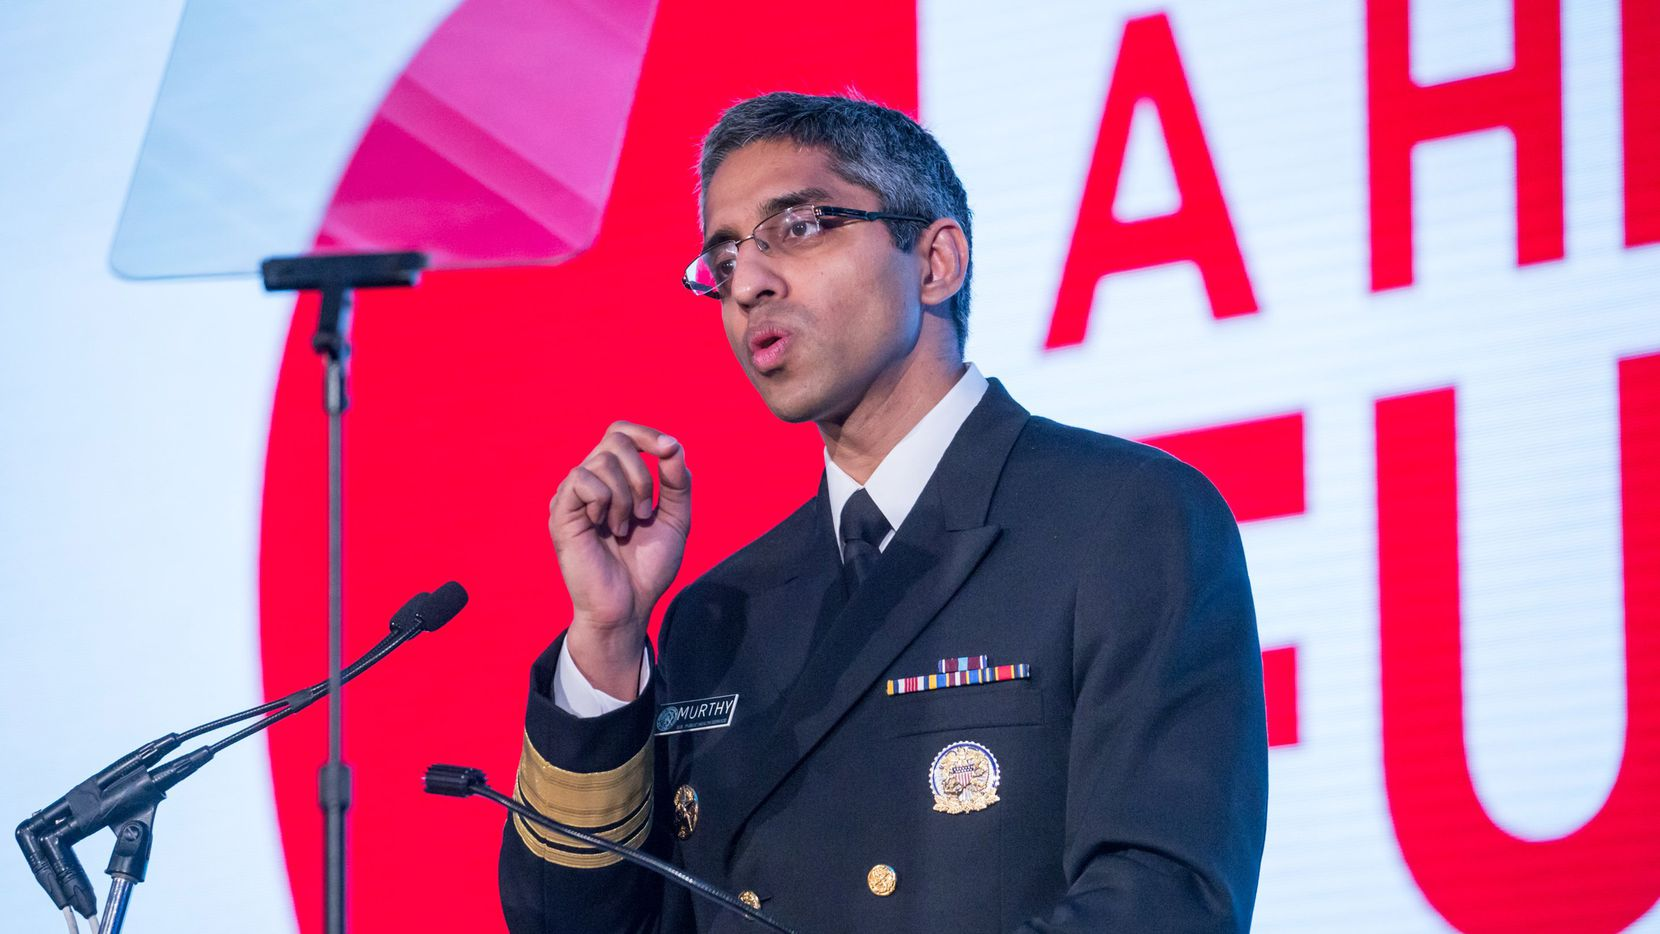 """U.S. Surgeon General Dr. Vivek H. Murthy speaks on May 20, 2016 at the Building a Healthier Future Summit in Washington, D.C. Murthy released a report Thursday calling for a """"cultural shift in how we think about addction."""" (Cheriss May/NurPhoto/Sipa USA/TNS)"""